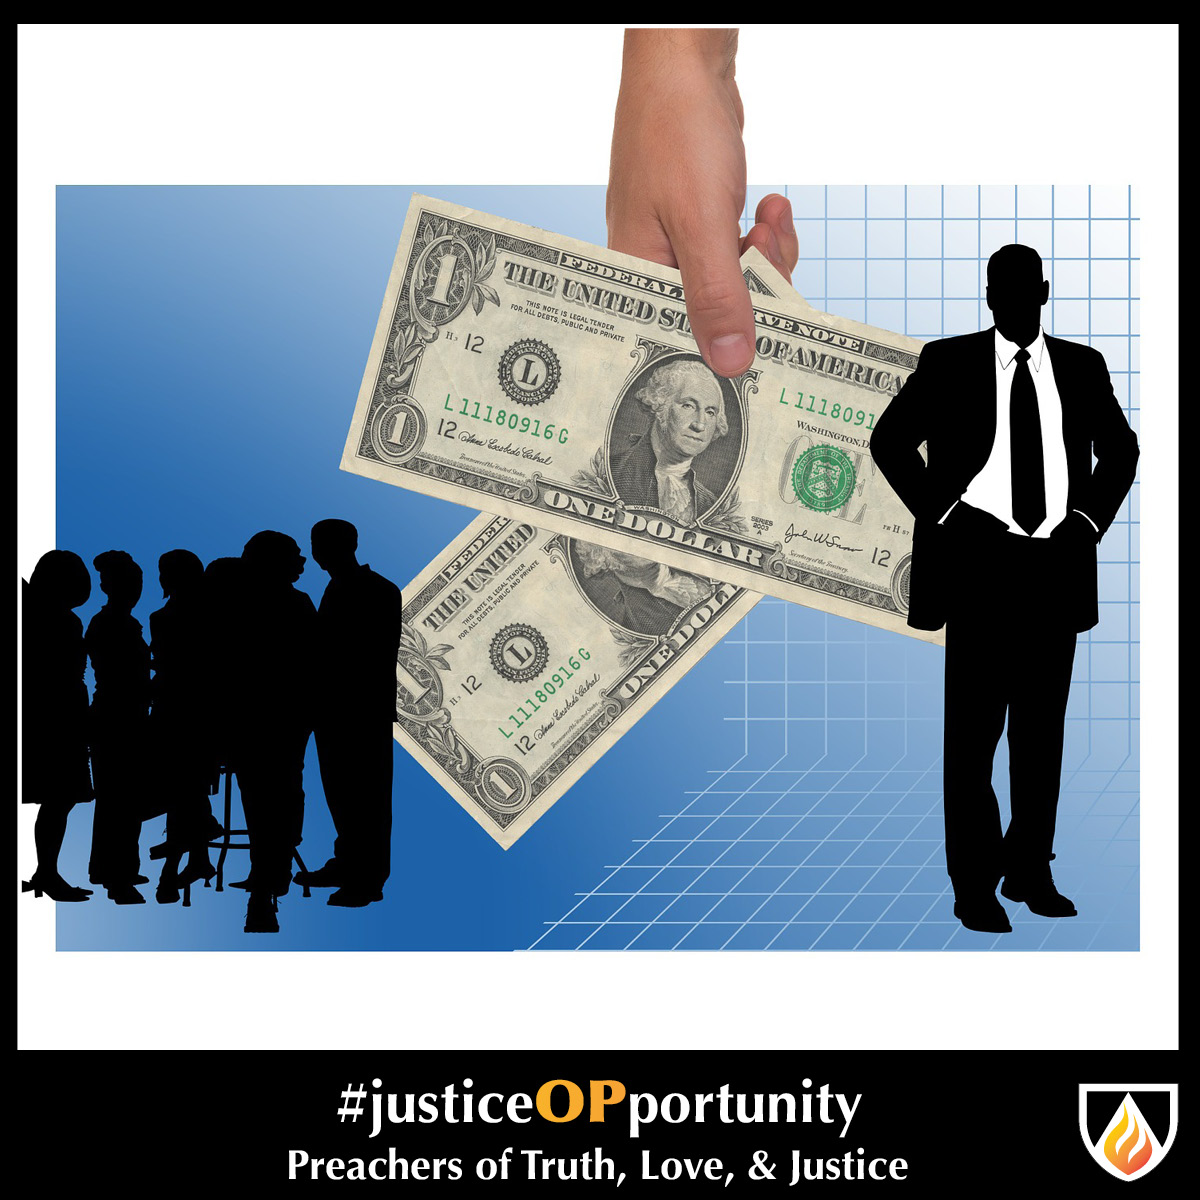 #justiceOPportunity Thursday—May 27, 2021